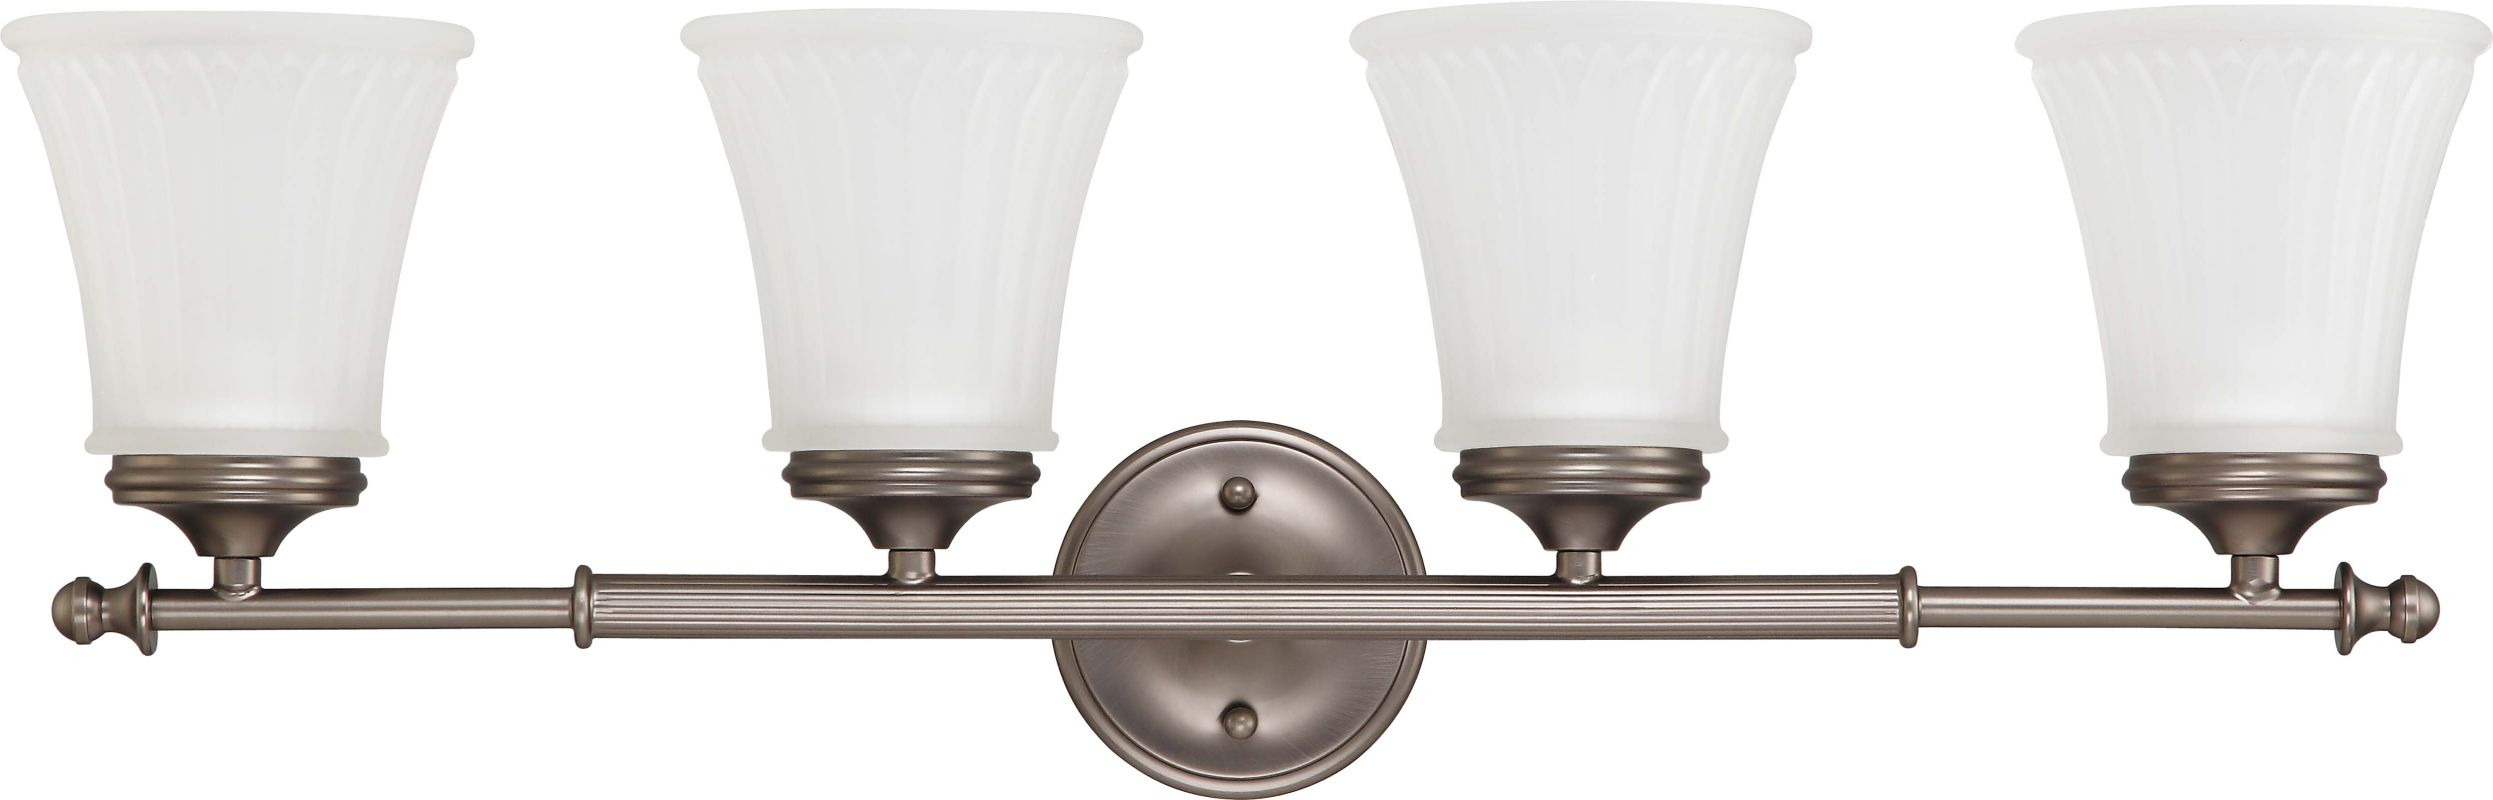 Nuvo Lighting 60/4014 Teller Four Light Bathroom Fixture with Frosted